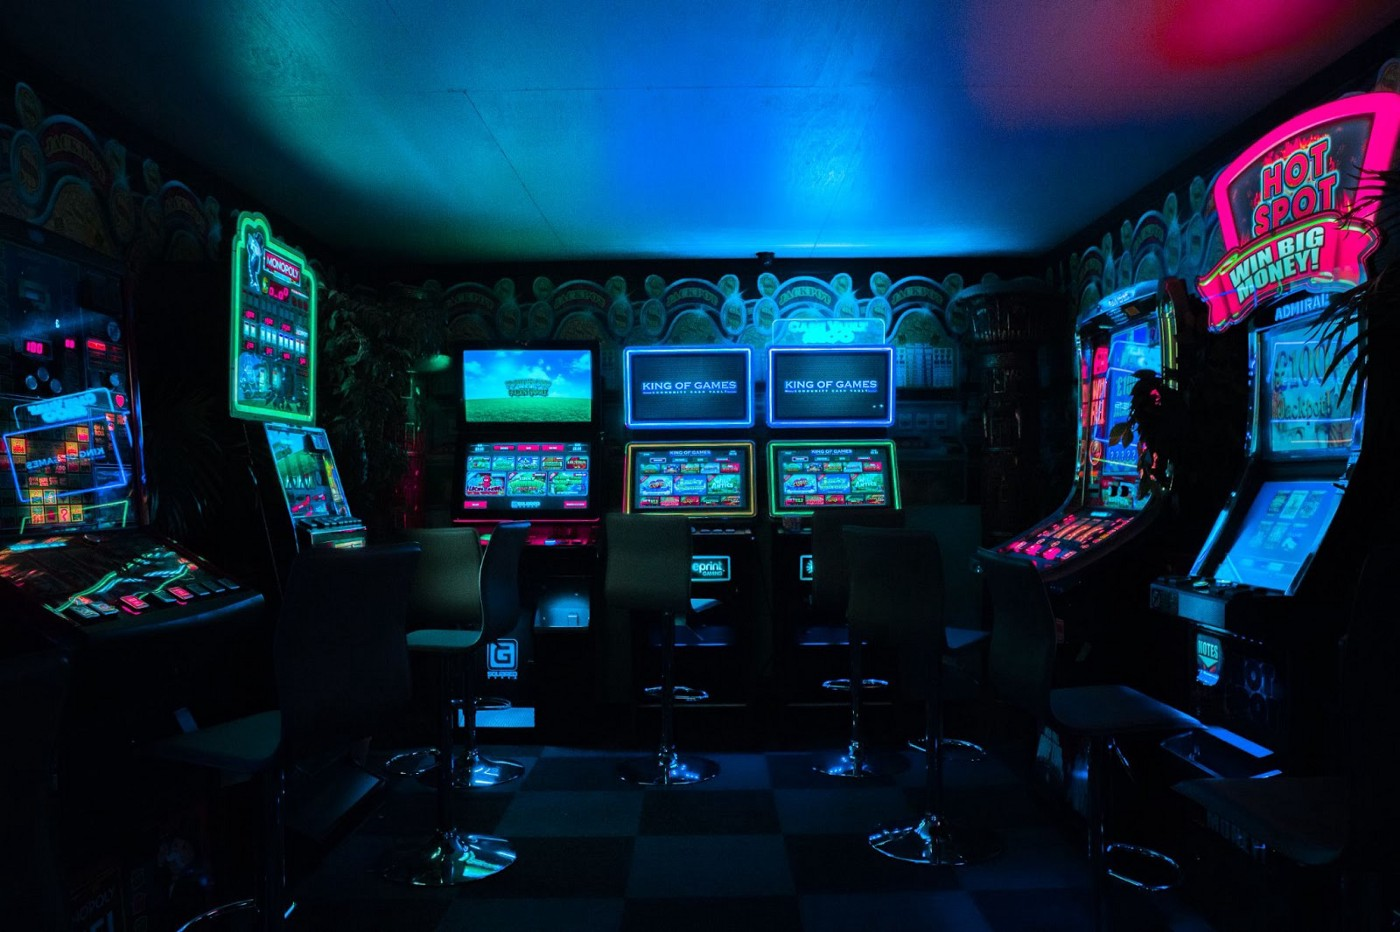 A gaming center